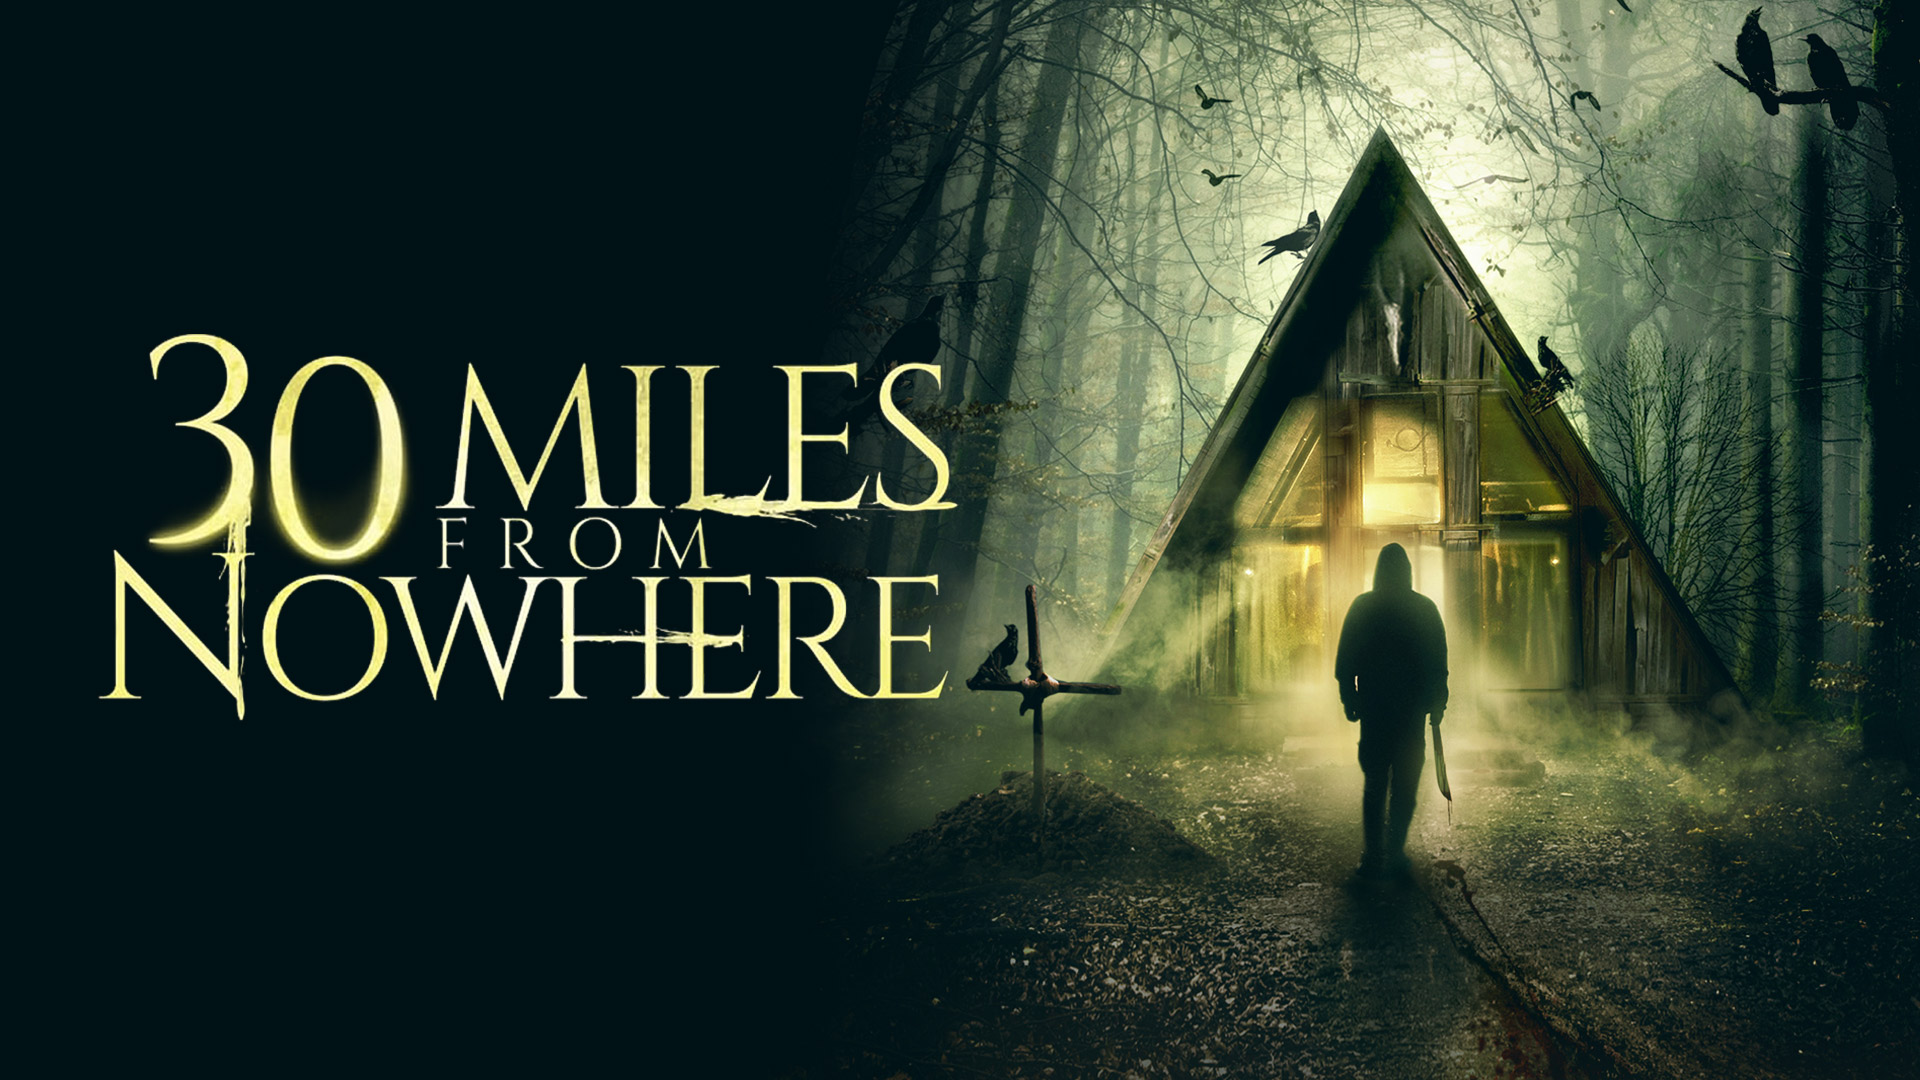 30 Miles From Nowhere